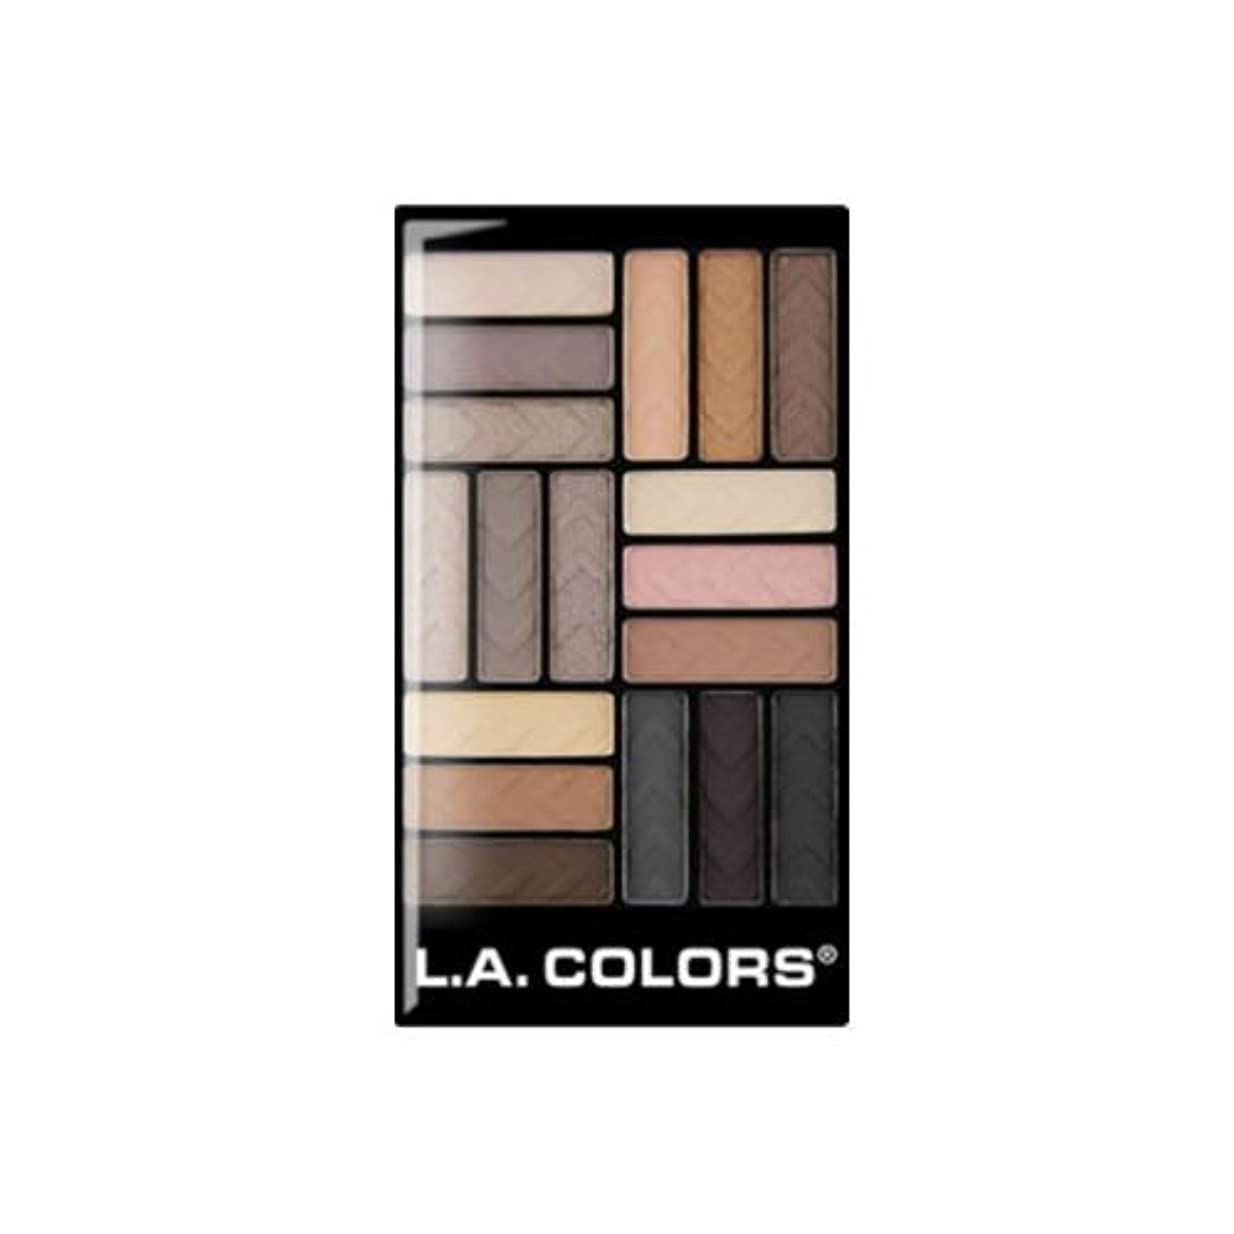 周り受取人のり(6 Pack) L.A. COLORS 18 Color Eyeshadow - Downtown Brown (並行輸入品)